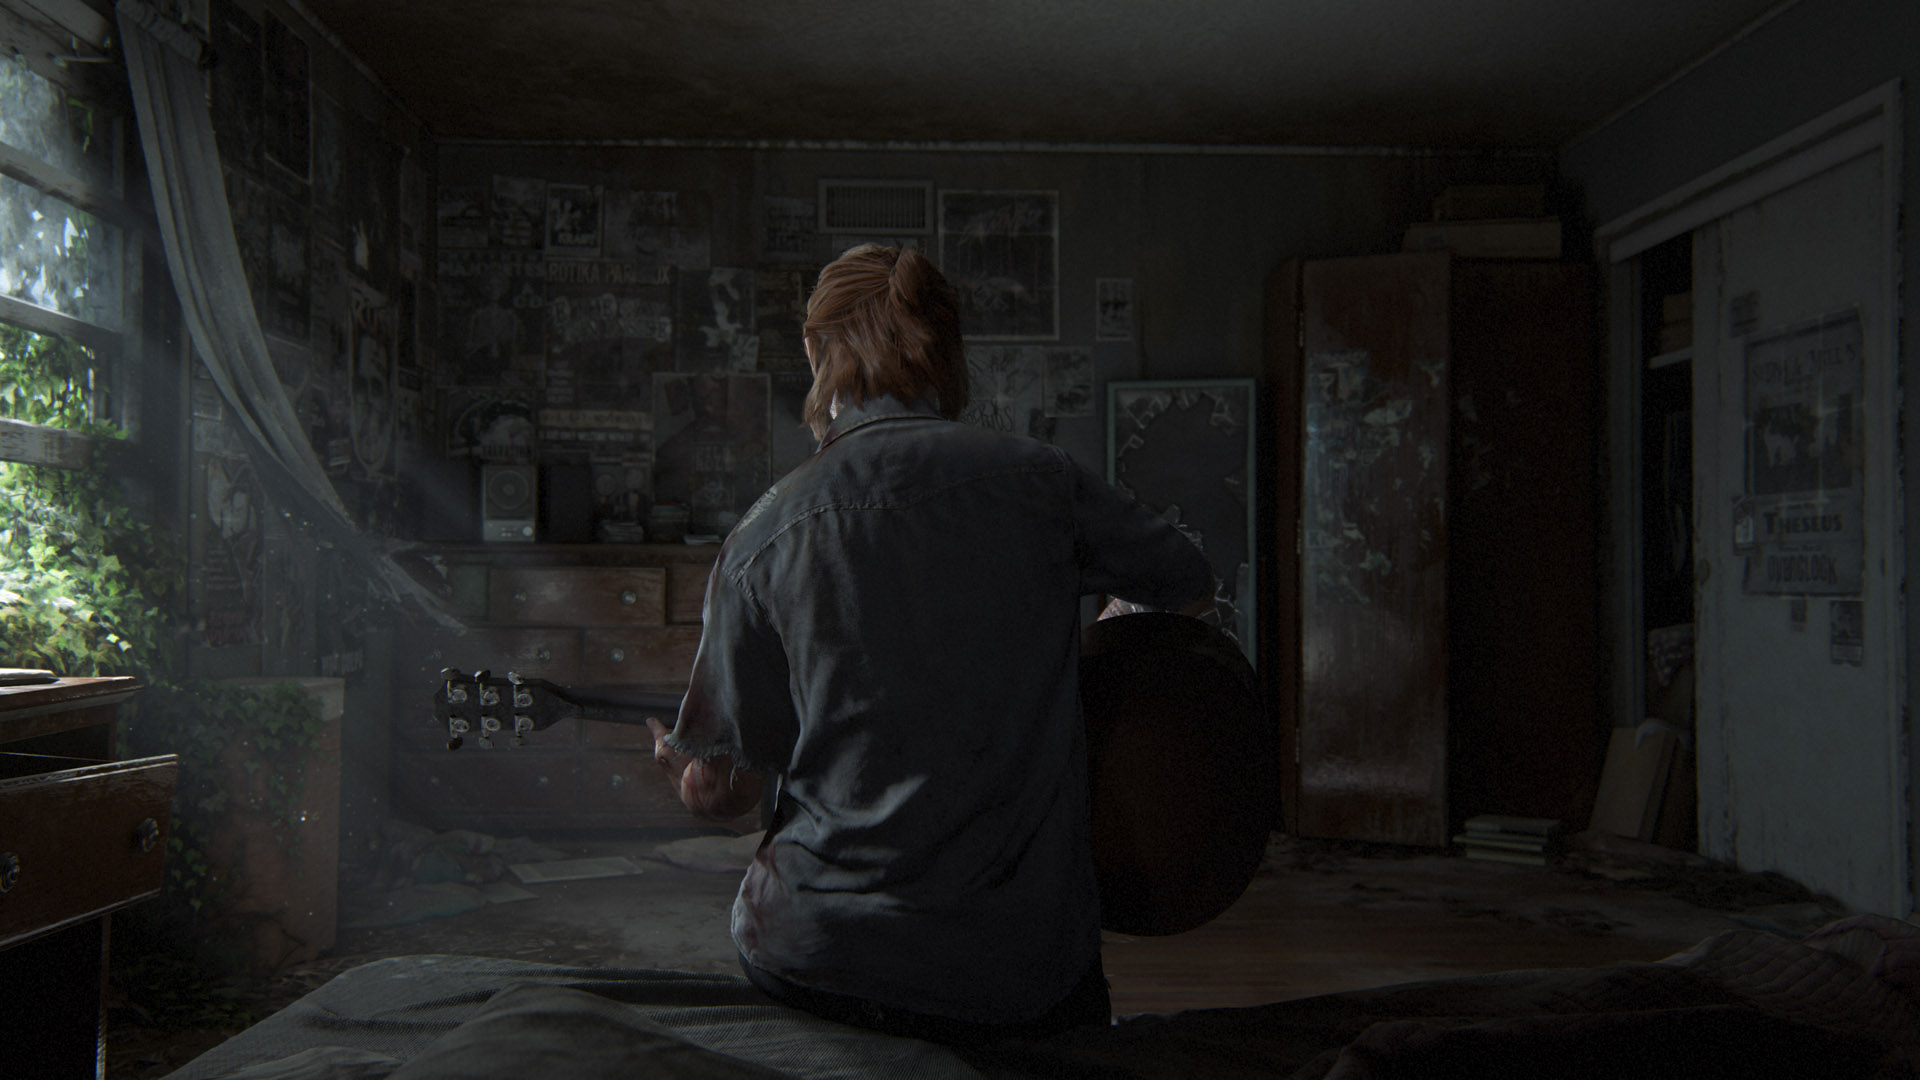 Ellie from The Last of Us Sitting on a Bed Holding a Guitar